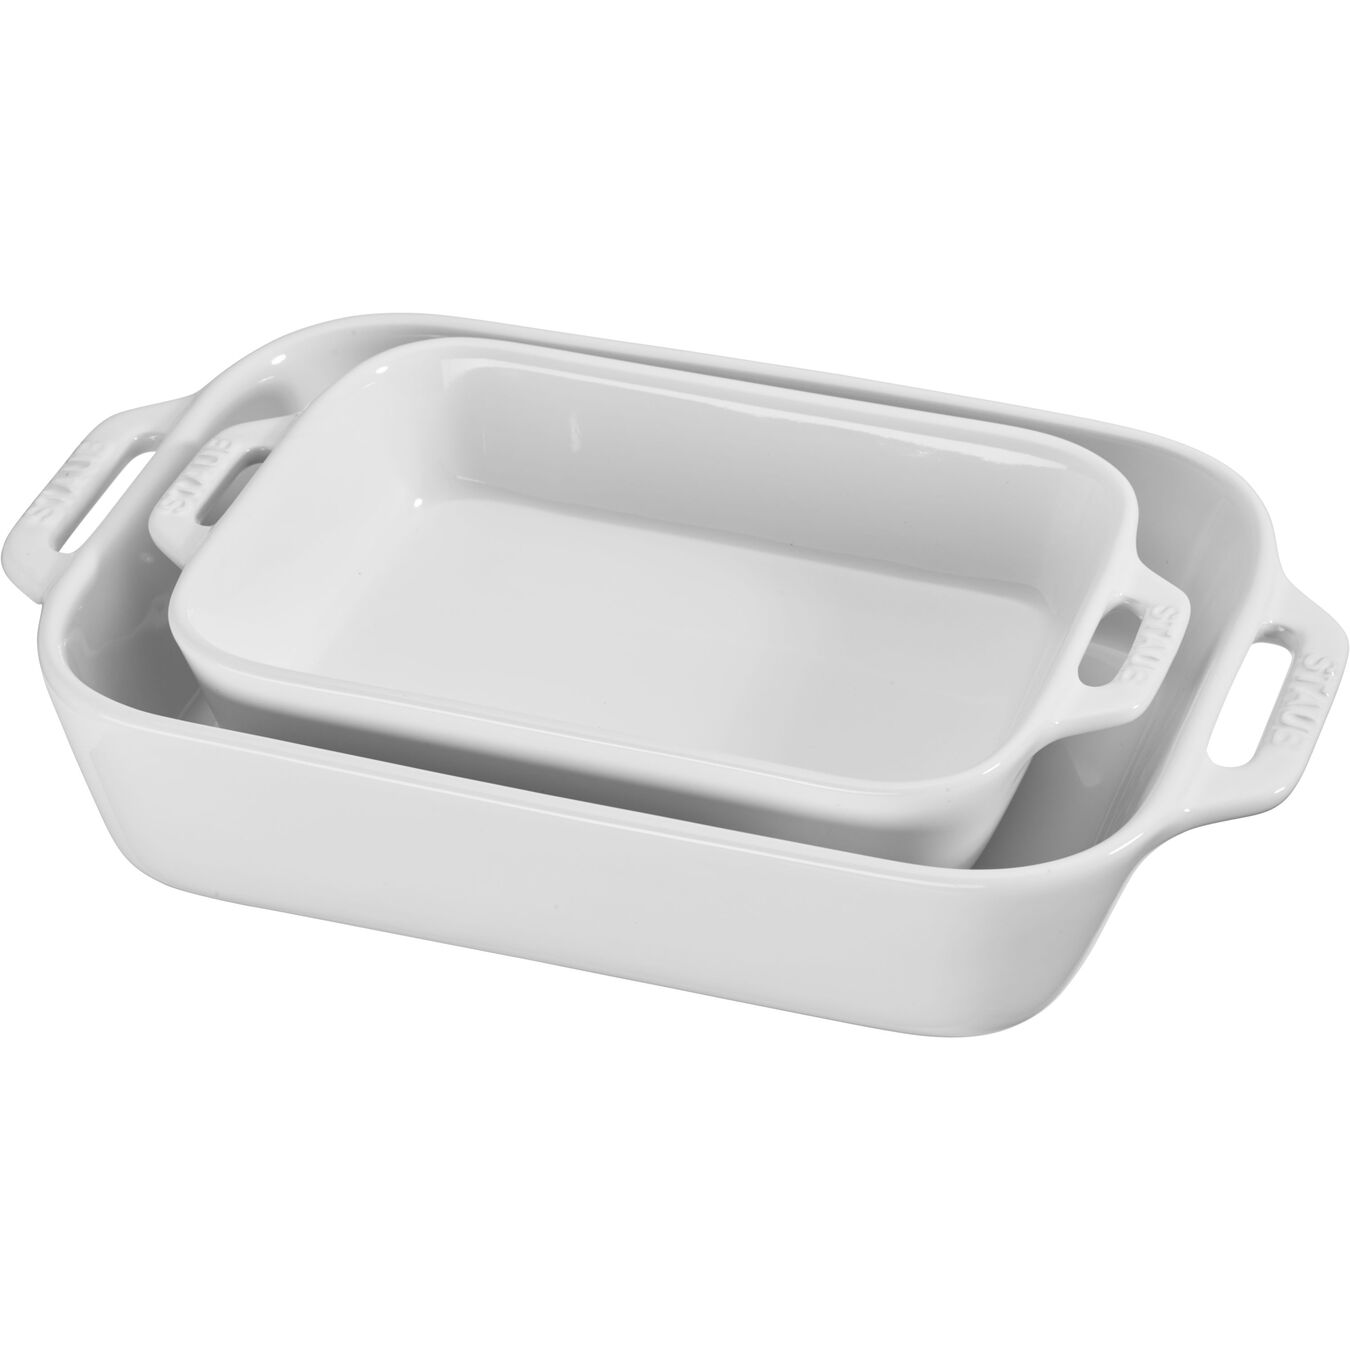 2-pc Rectangular Baking Dish Set - White,,large 1